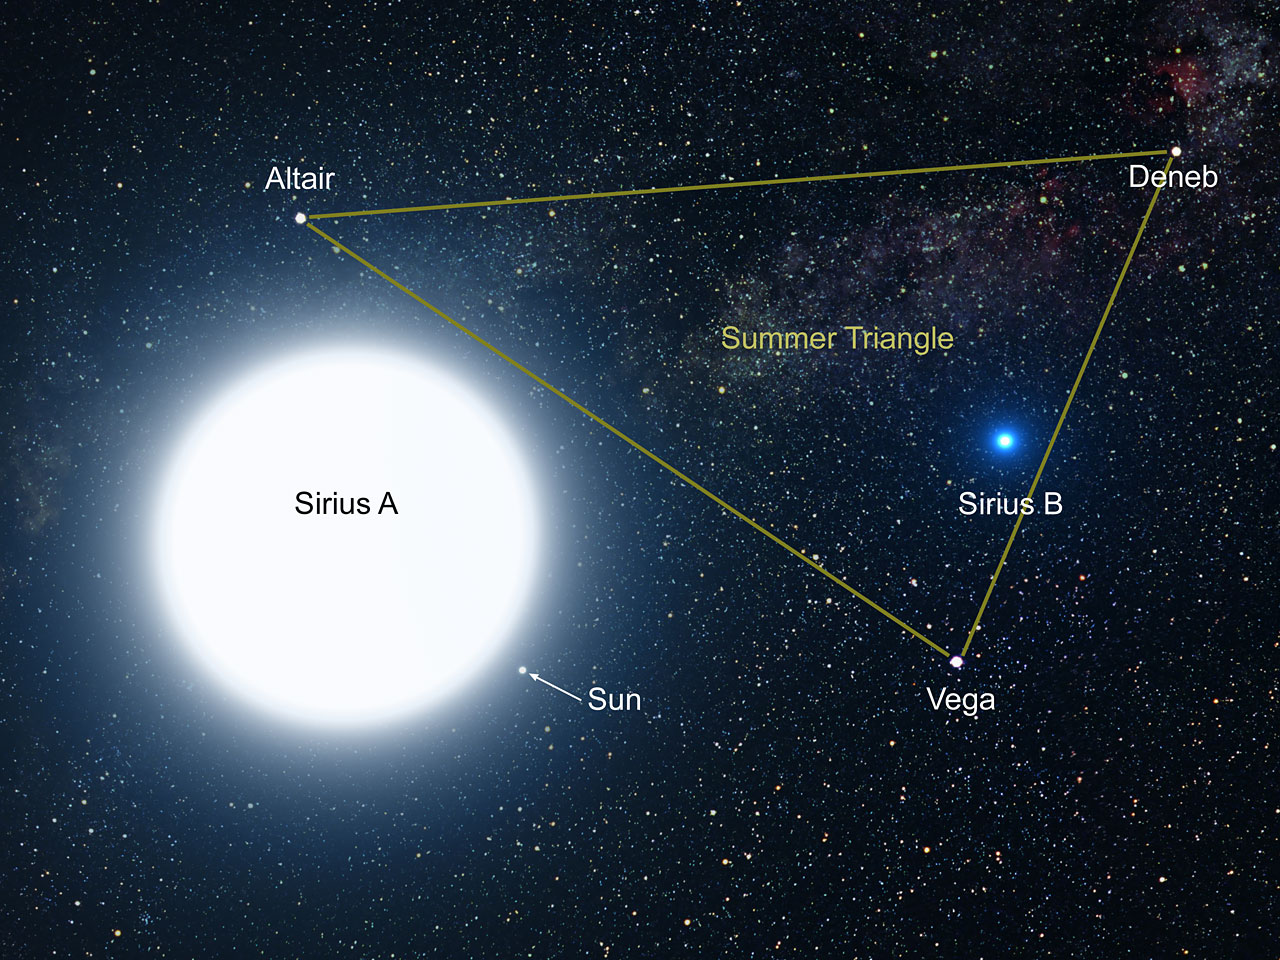 An artist's impression of Sirius A and B [annotated]